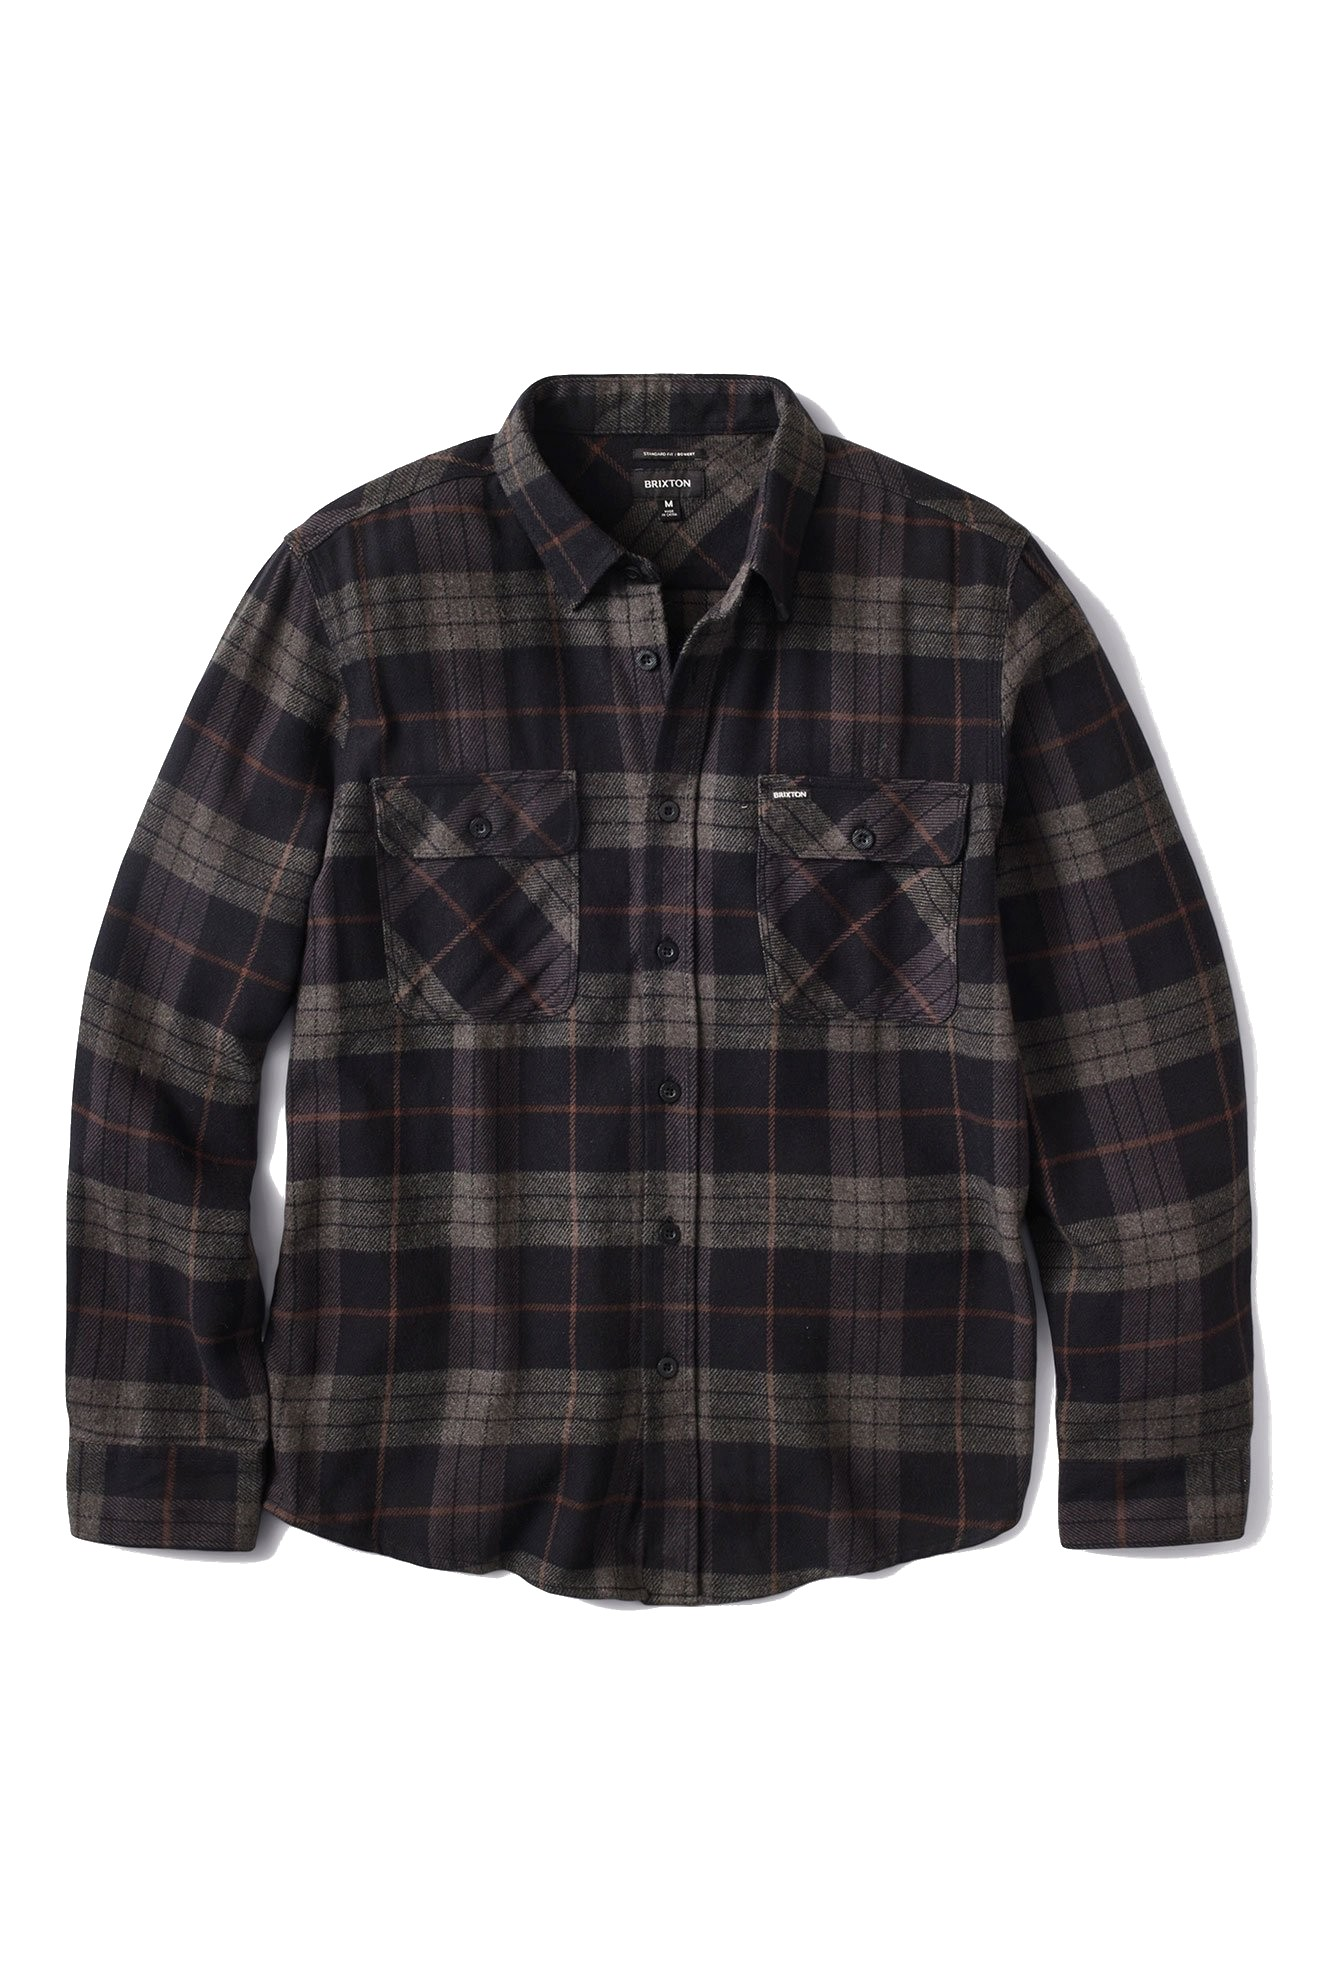 BRIXTON BOWERY TALL FLANNEL OVERHEMD - BLACK/CHARCOAL